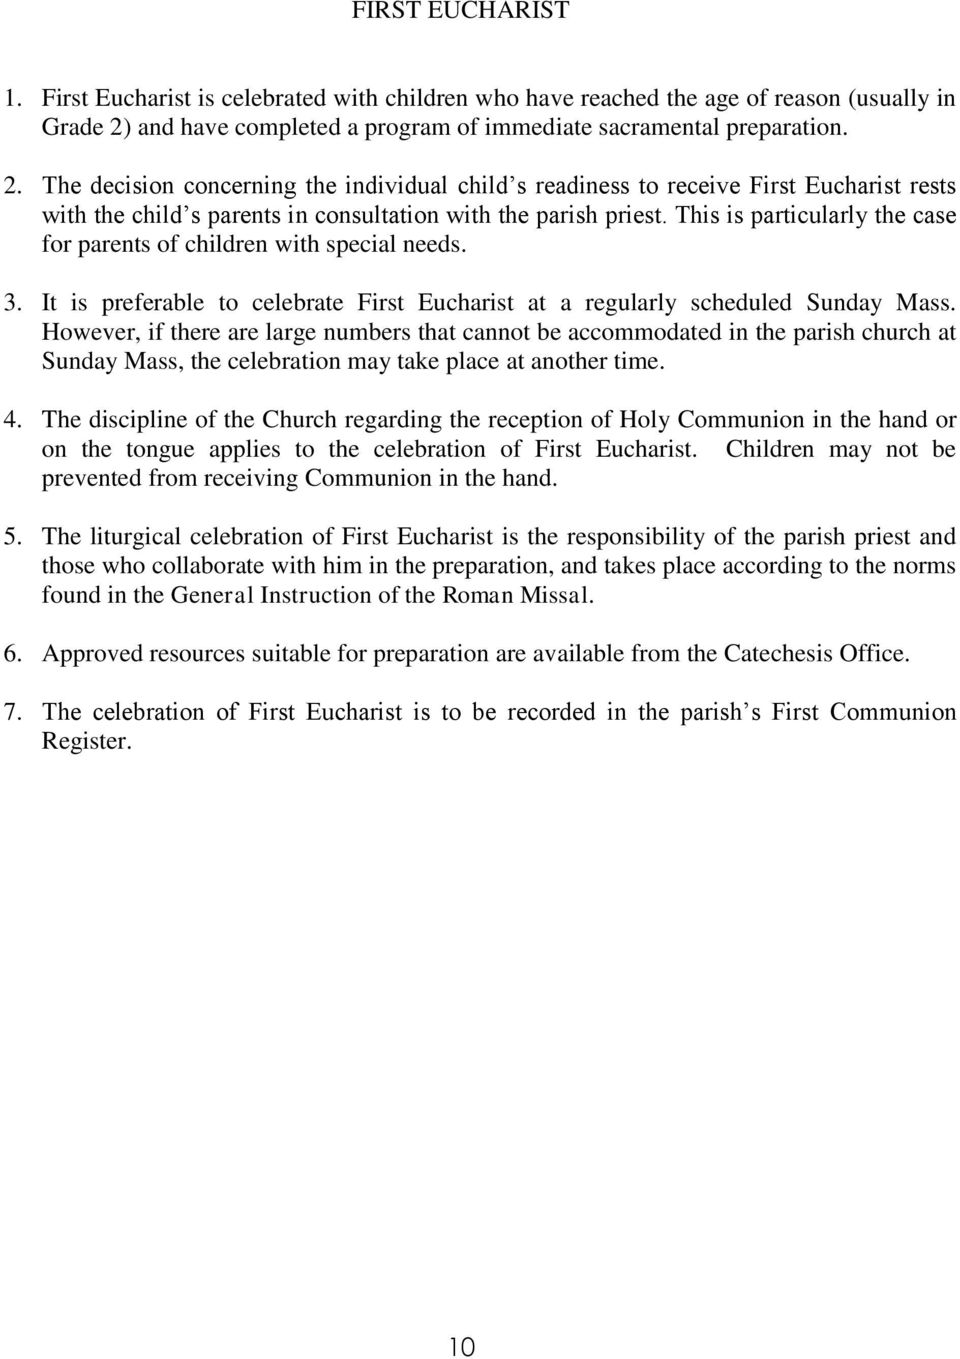 The decision concerning the individual child s readiness to receive First Eucharist rests with the child s parents in consultation with the parish priest.